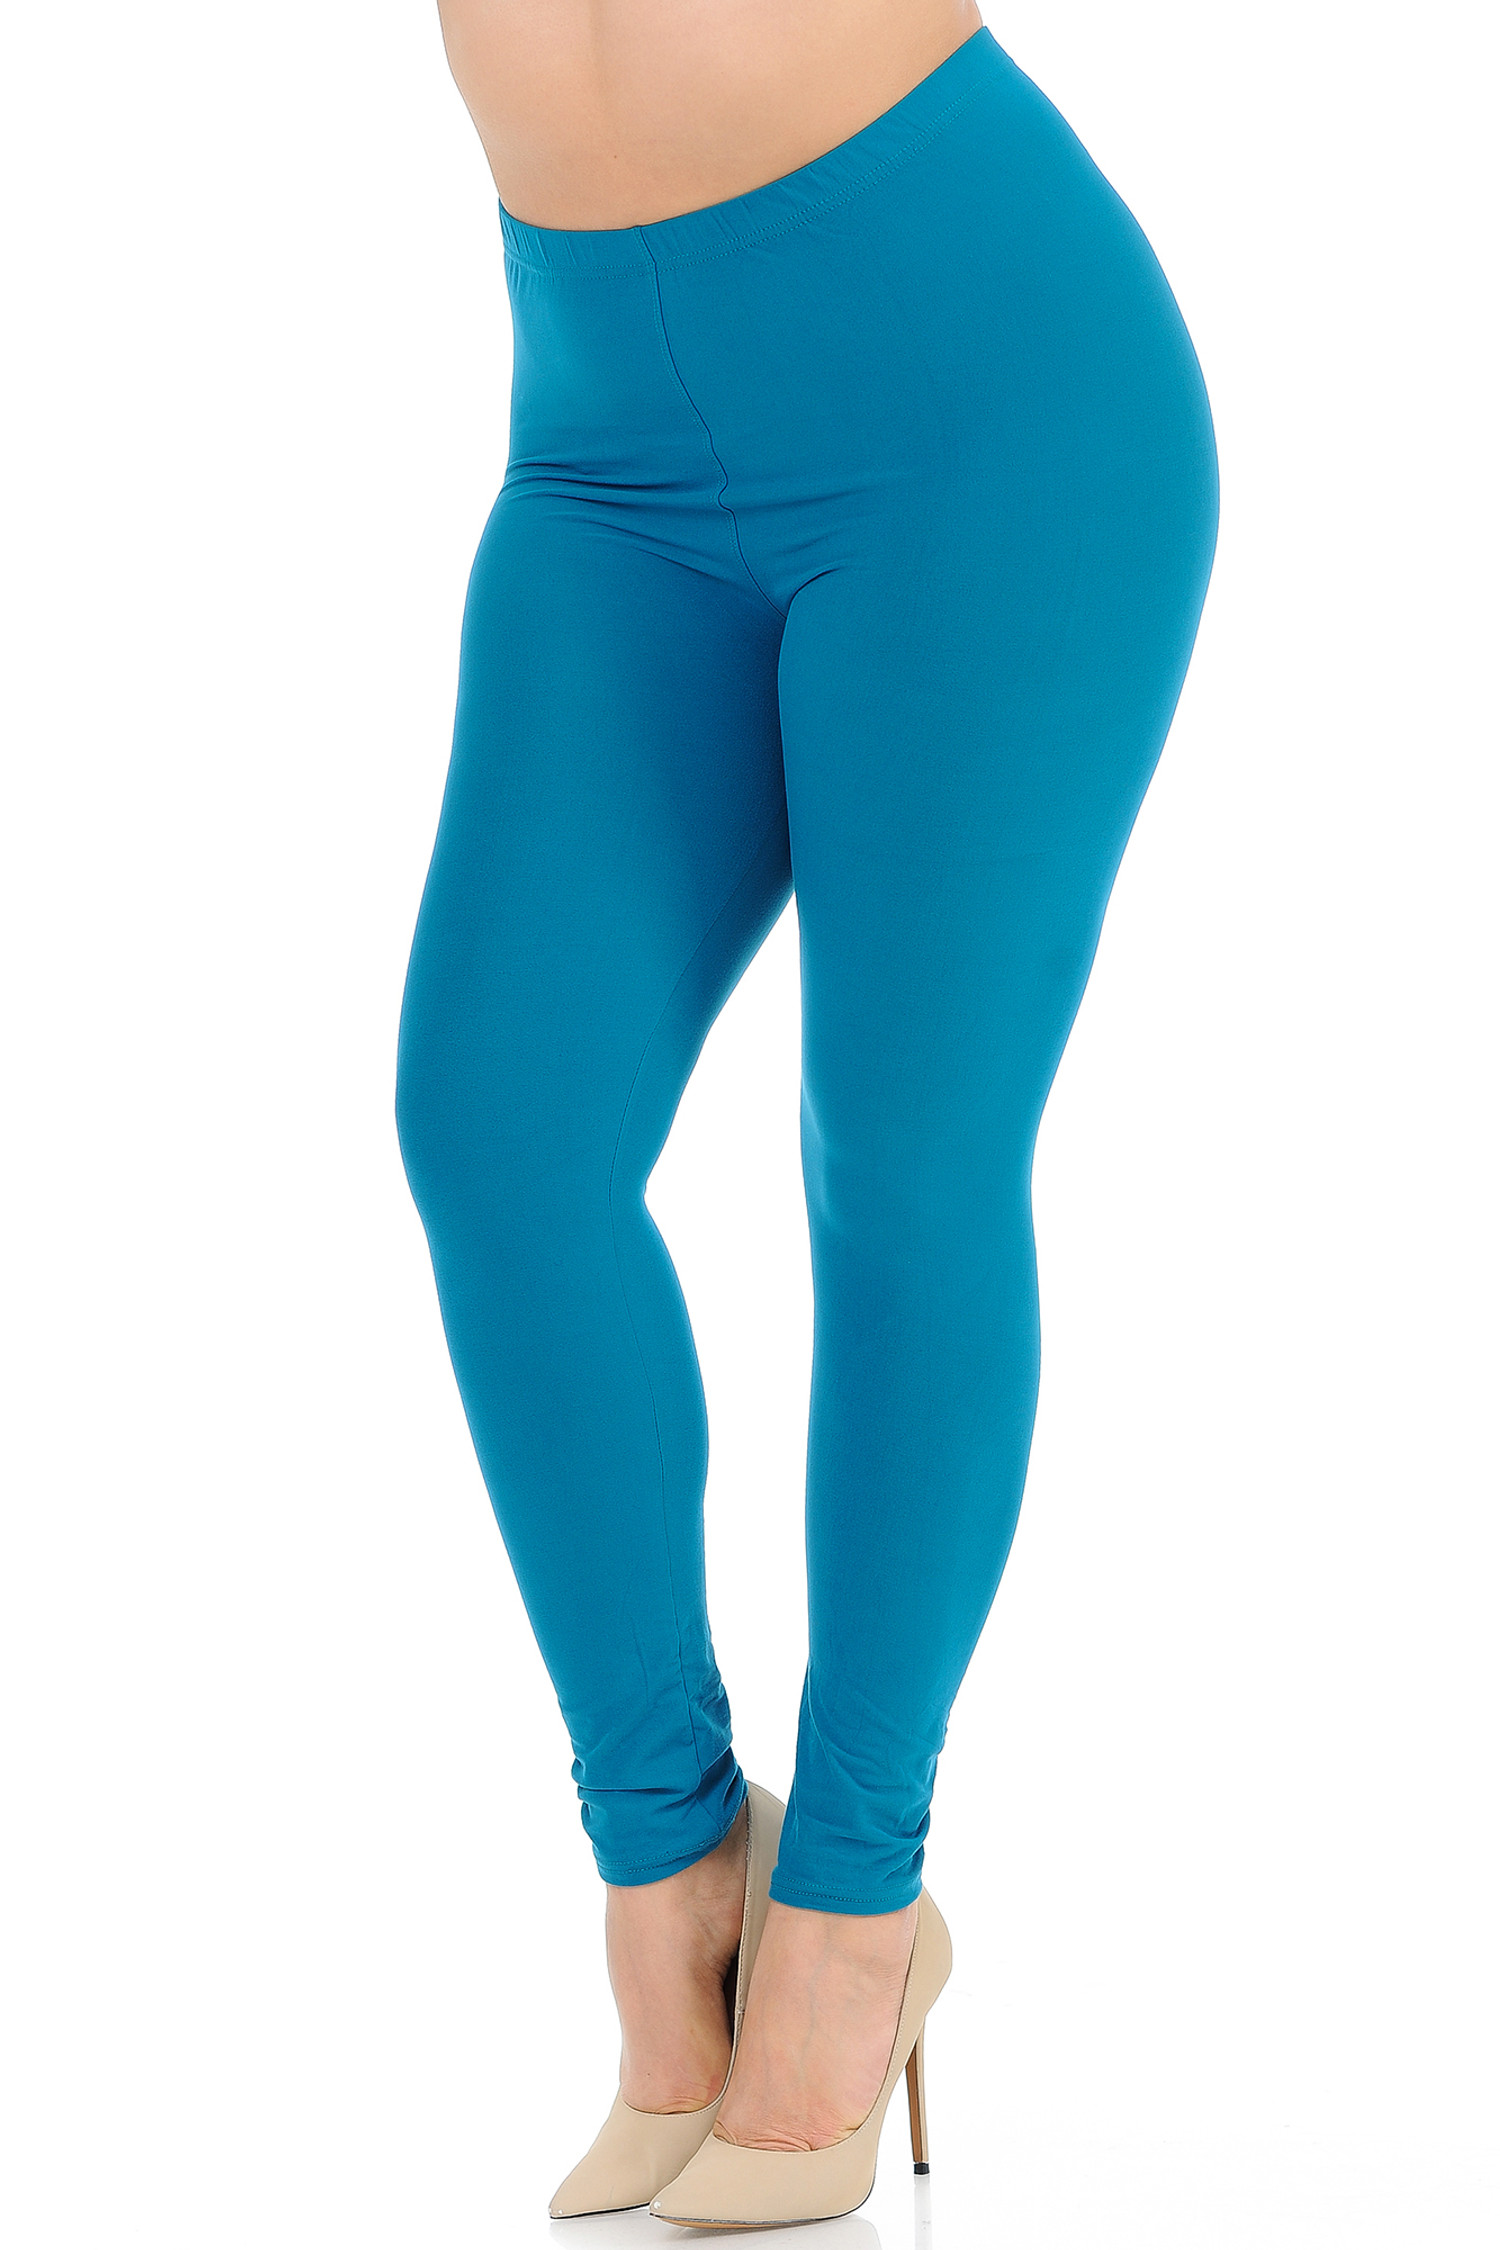 45 degree view of Buttery Soft Basic Solid Extra Plus Size Leggings - 3X-5X - New Mix